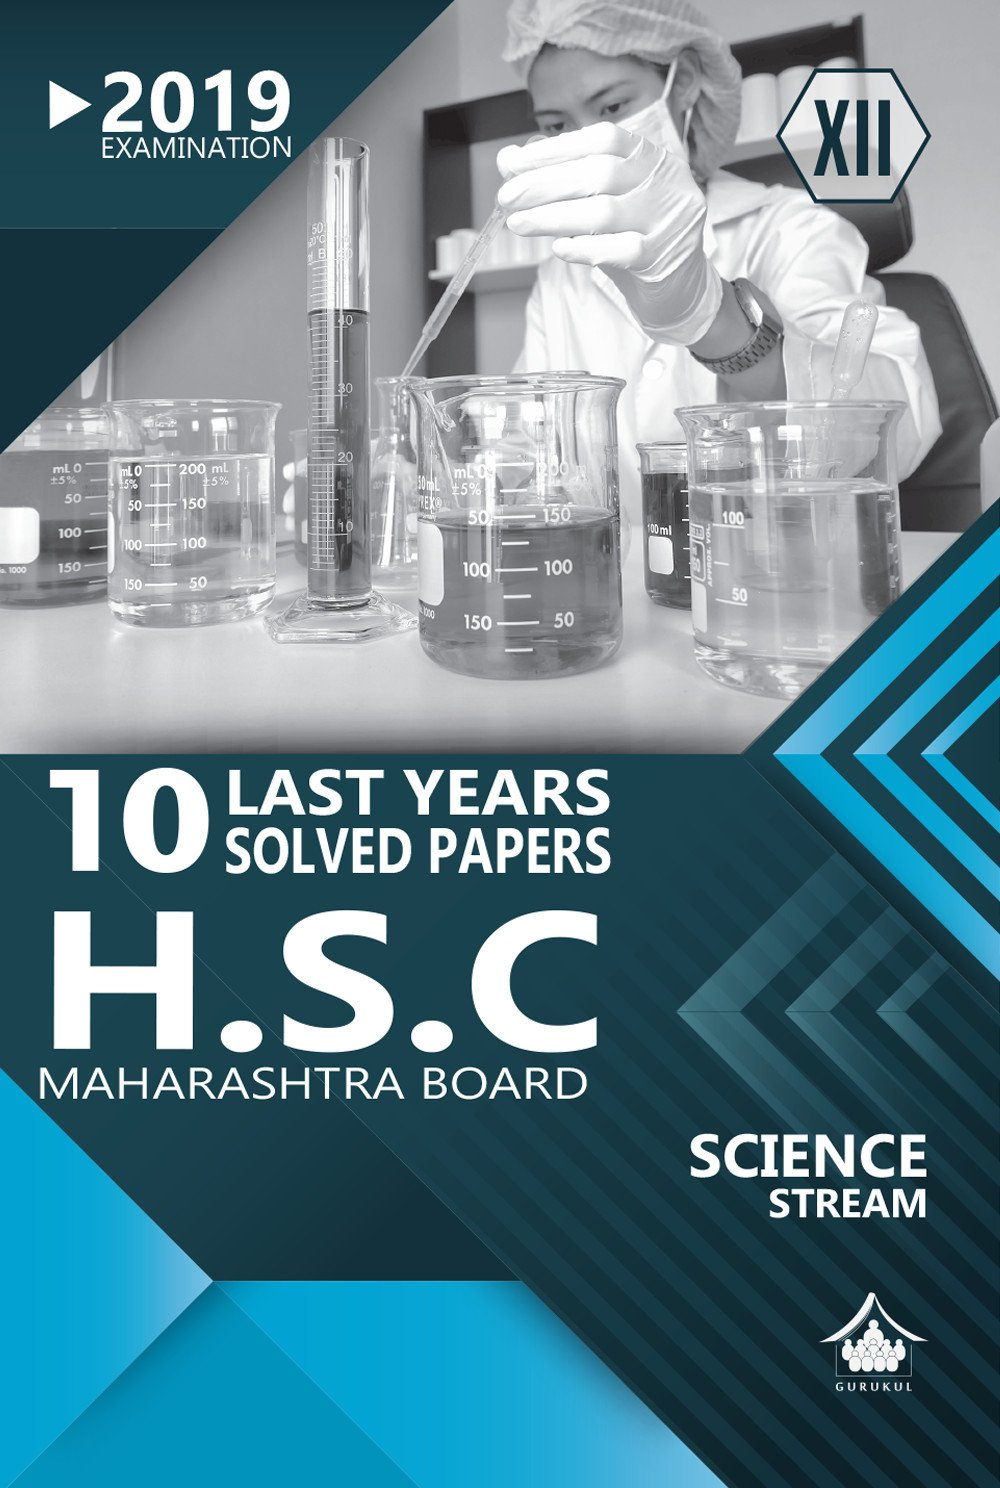 10 Last Years Solved Papers HSC - Science: Maharashtra Board